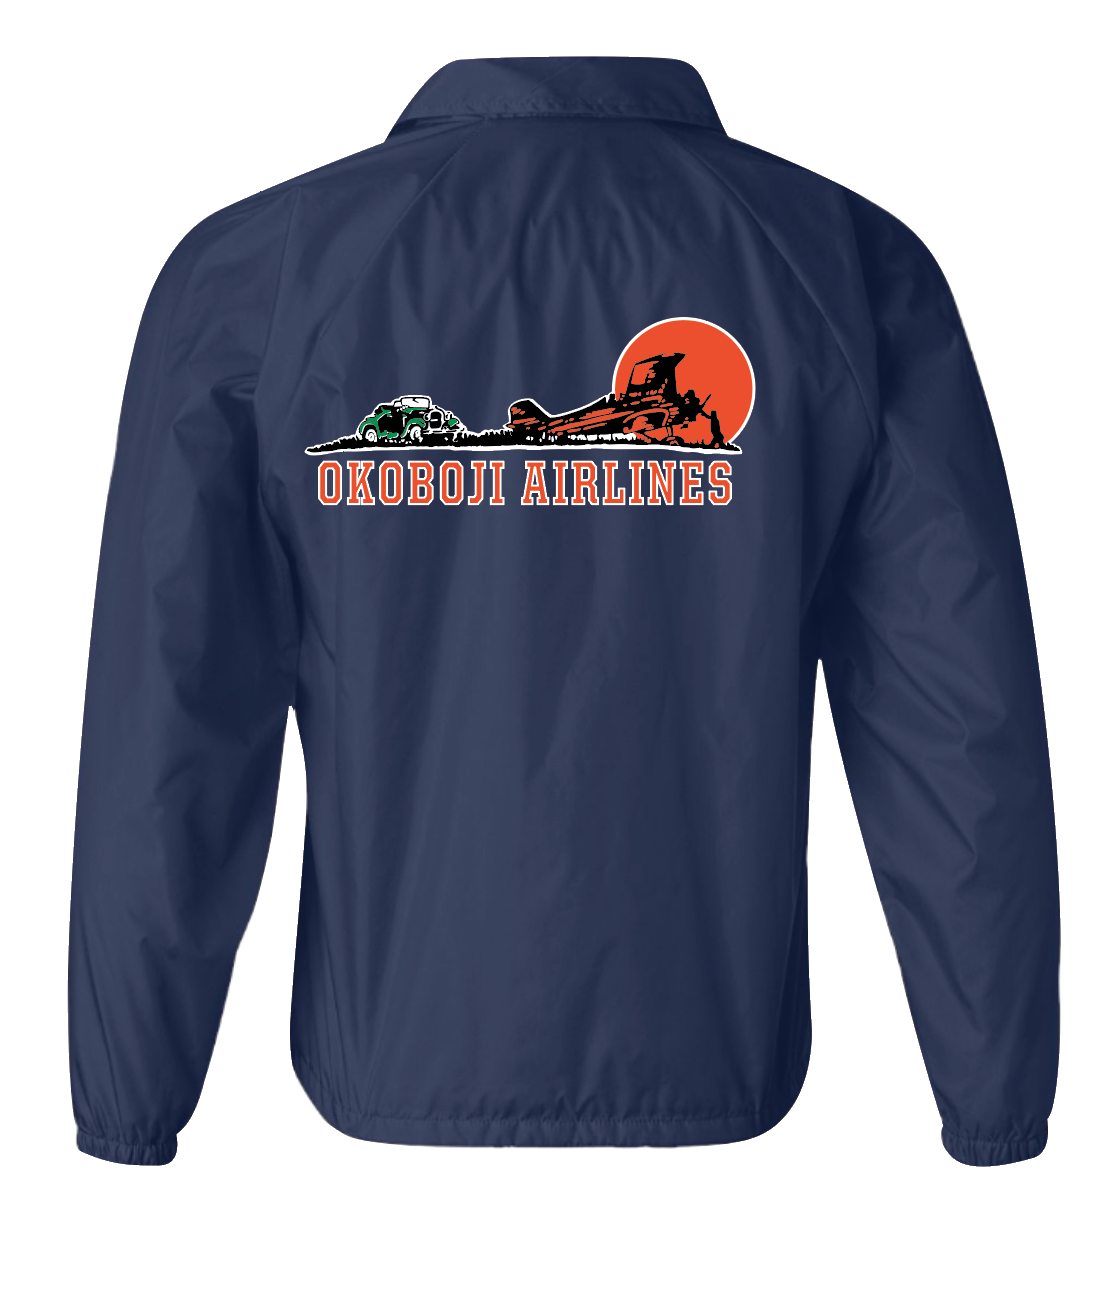 Okoboji Airlines Windbreaker Snap-Button Up Jacket